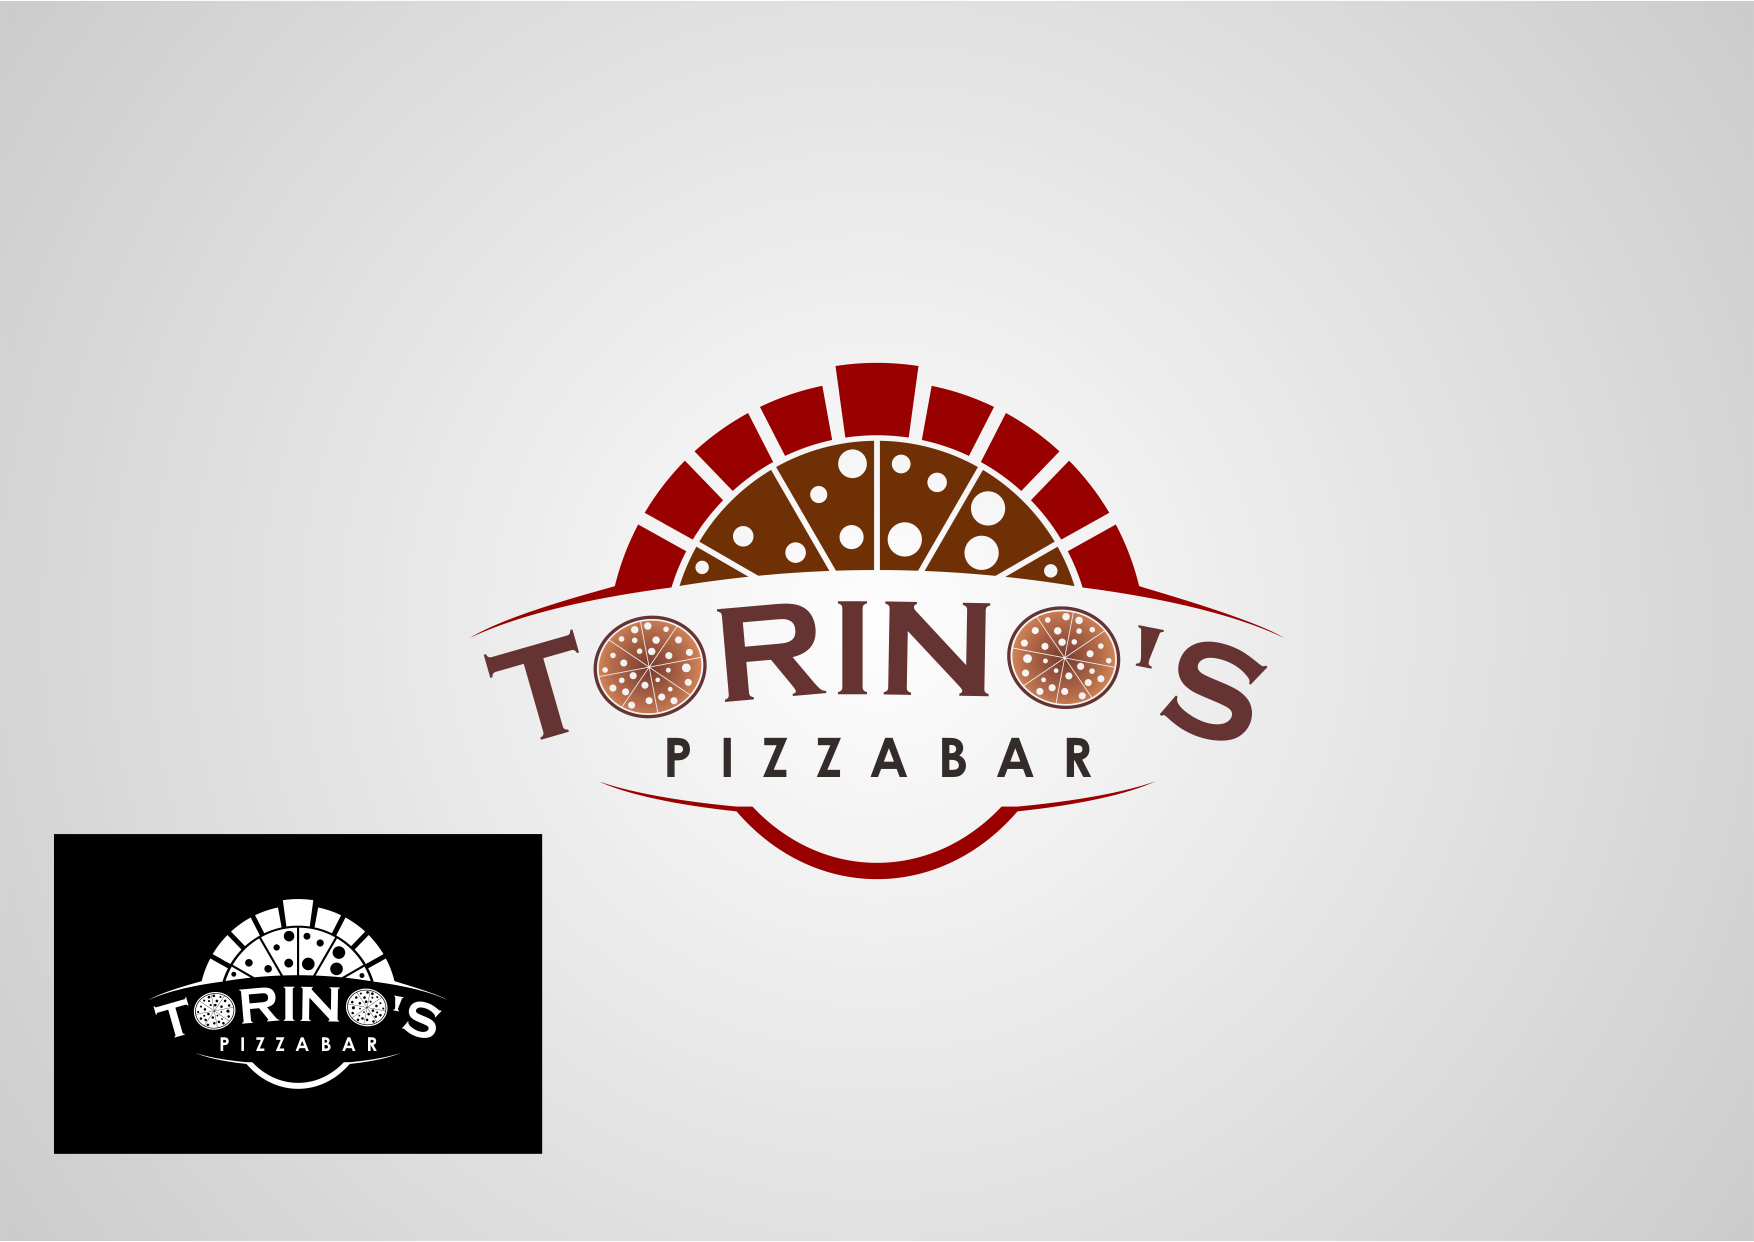 Custom Design by Private User - Entry No. 33 in the Custom Design Contest Torino's Pizza Bar Custom Design.